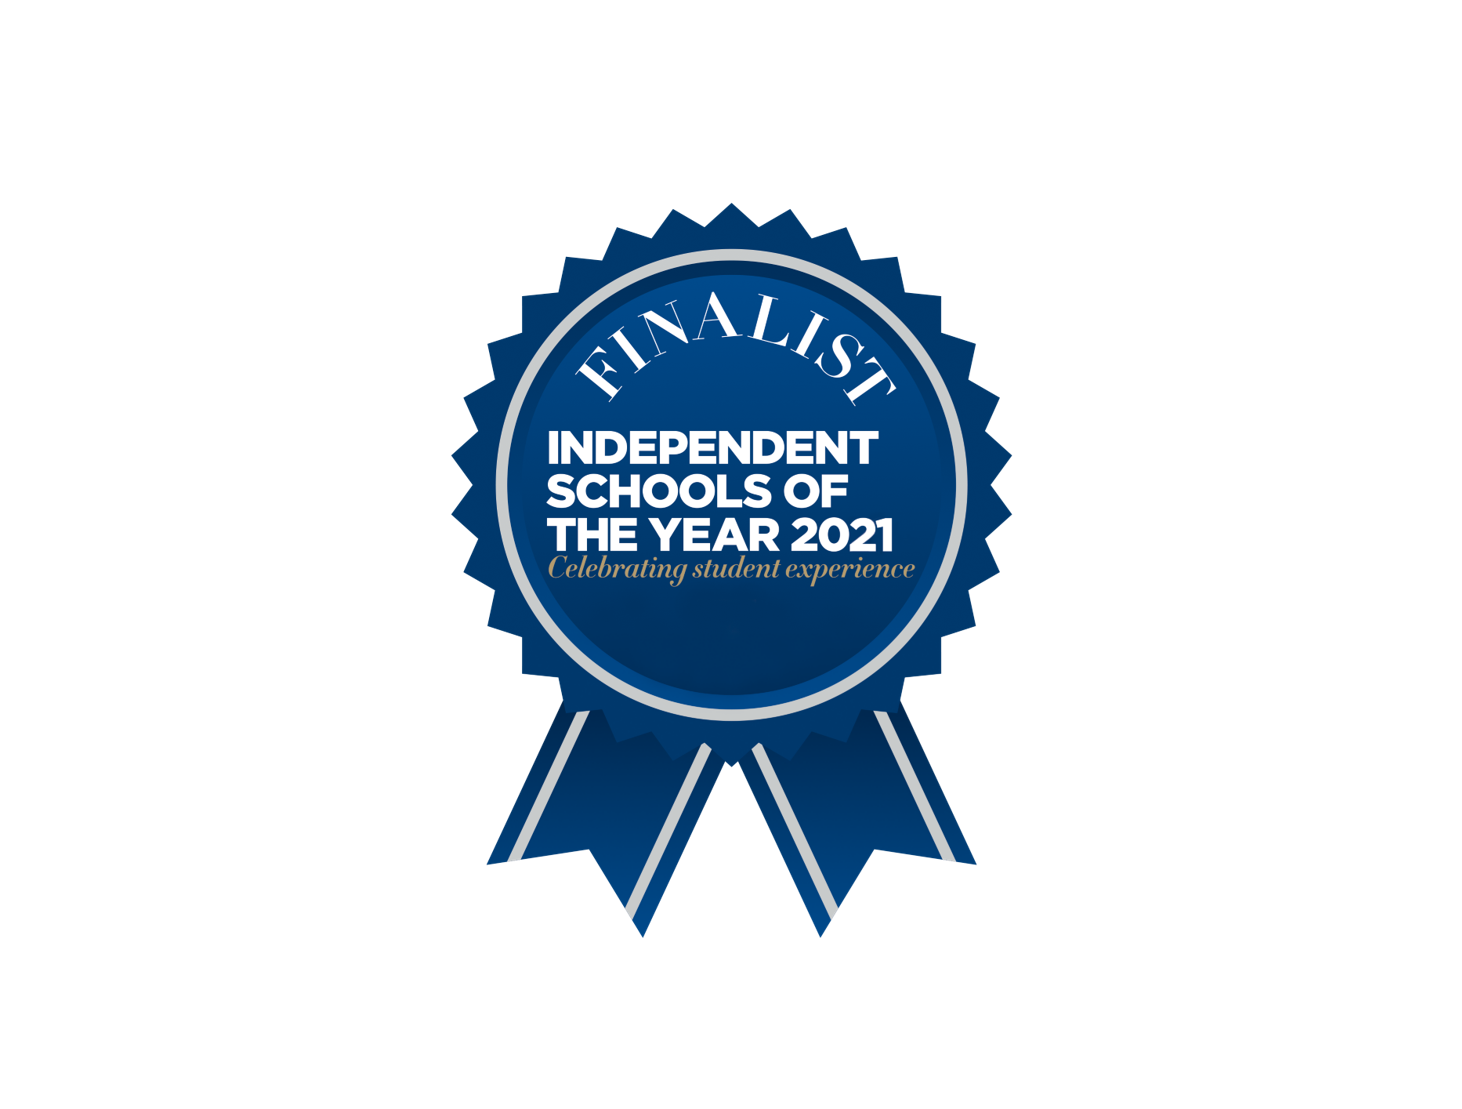 Stamford announced as finalists of Independent Schools of the Year 2021